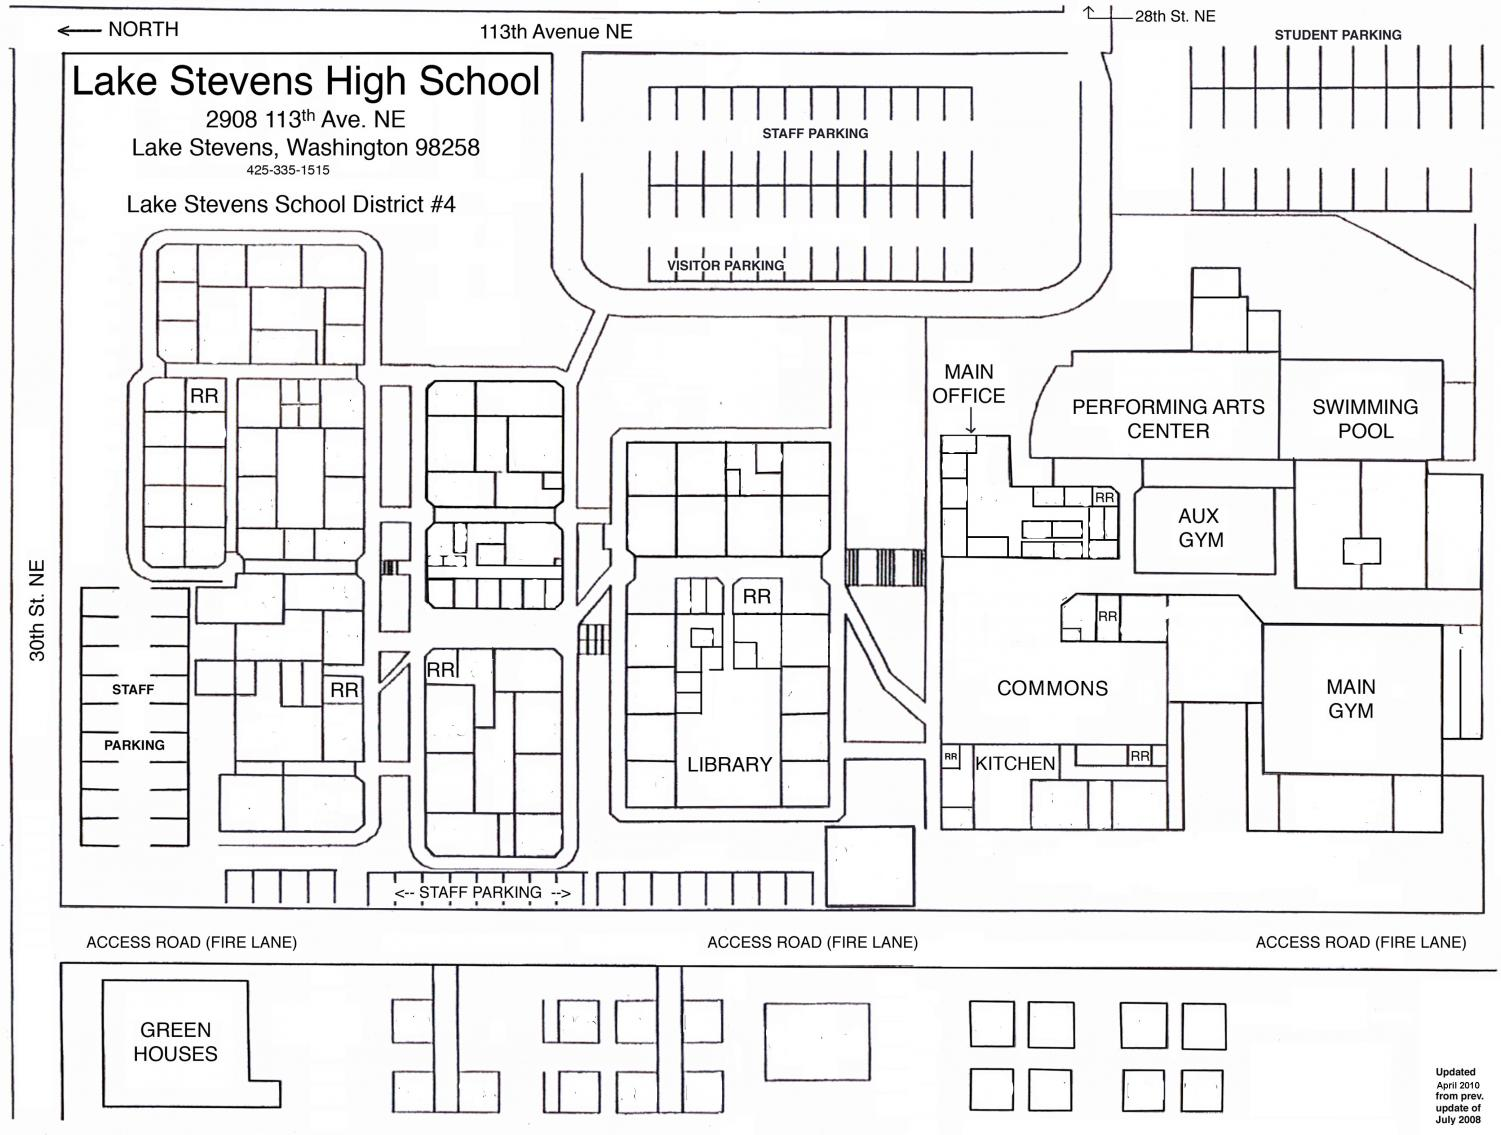 Before the overhaul: This is our school's layout as of today but once summer 2018 hits the school is going to undergo a drastic change.